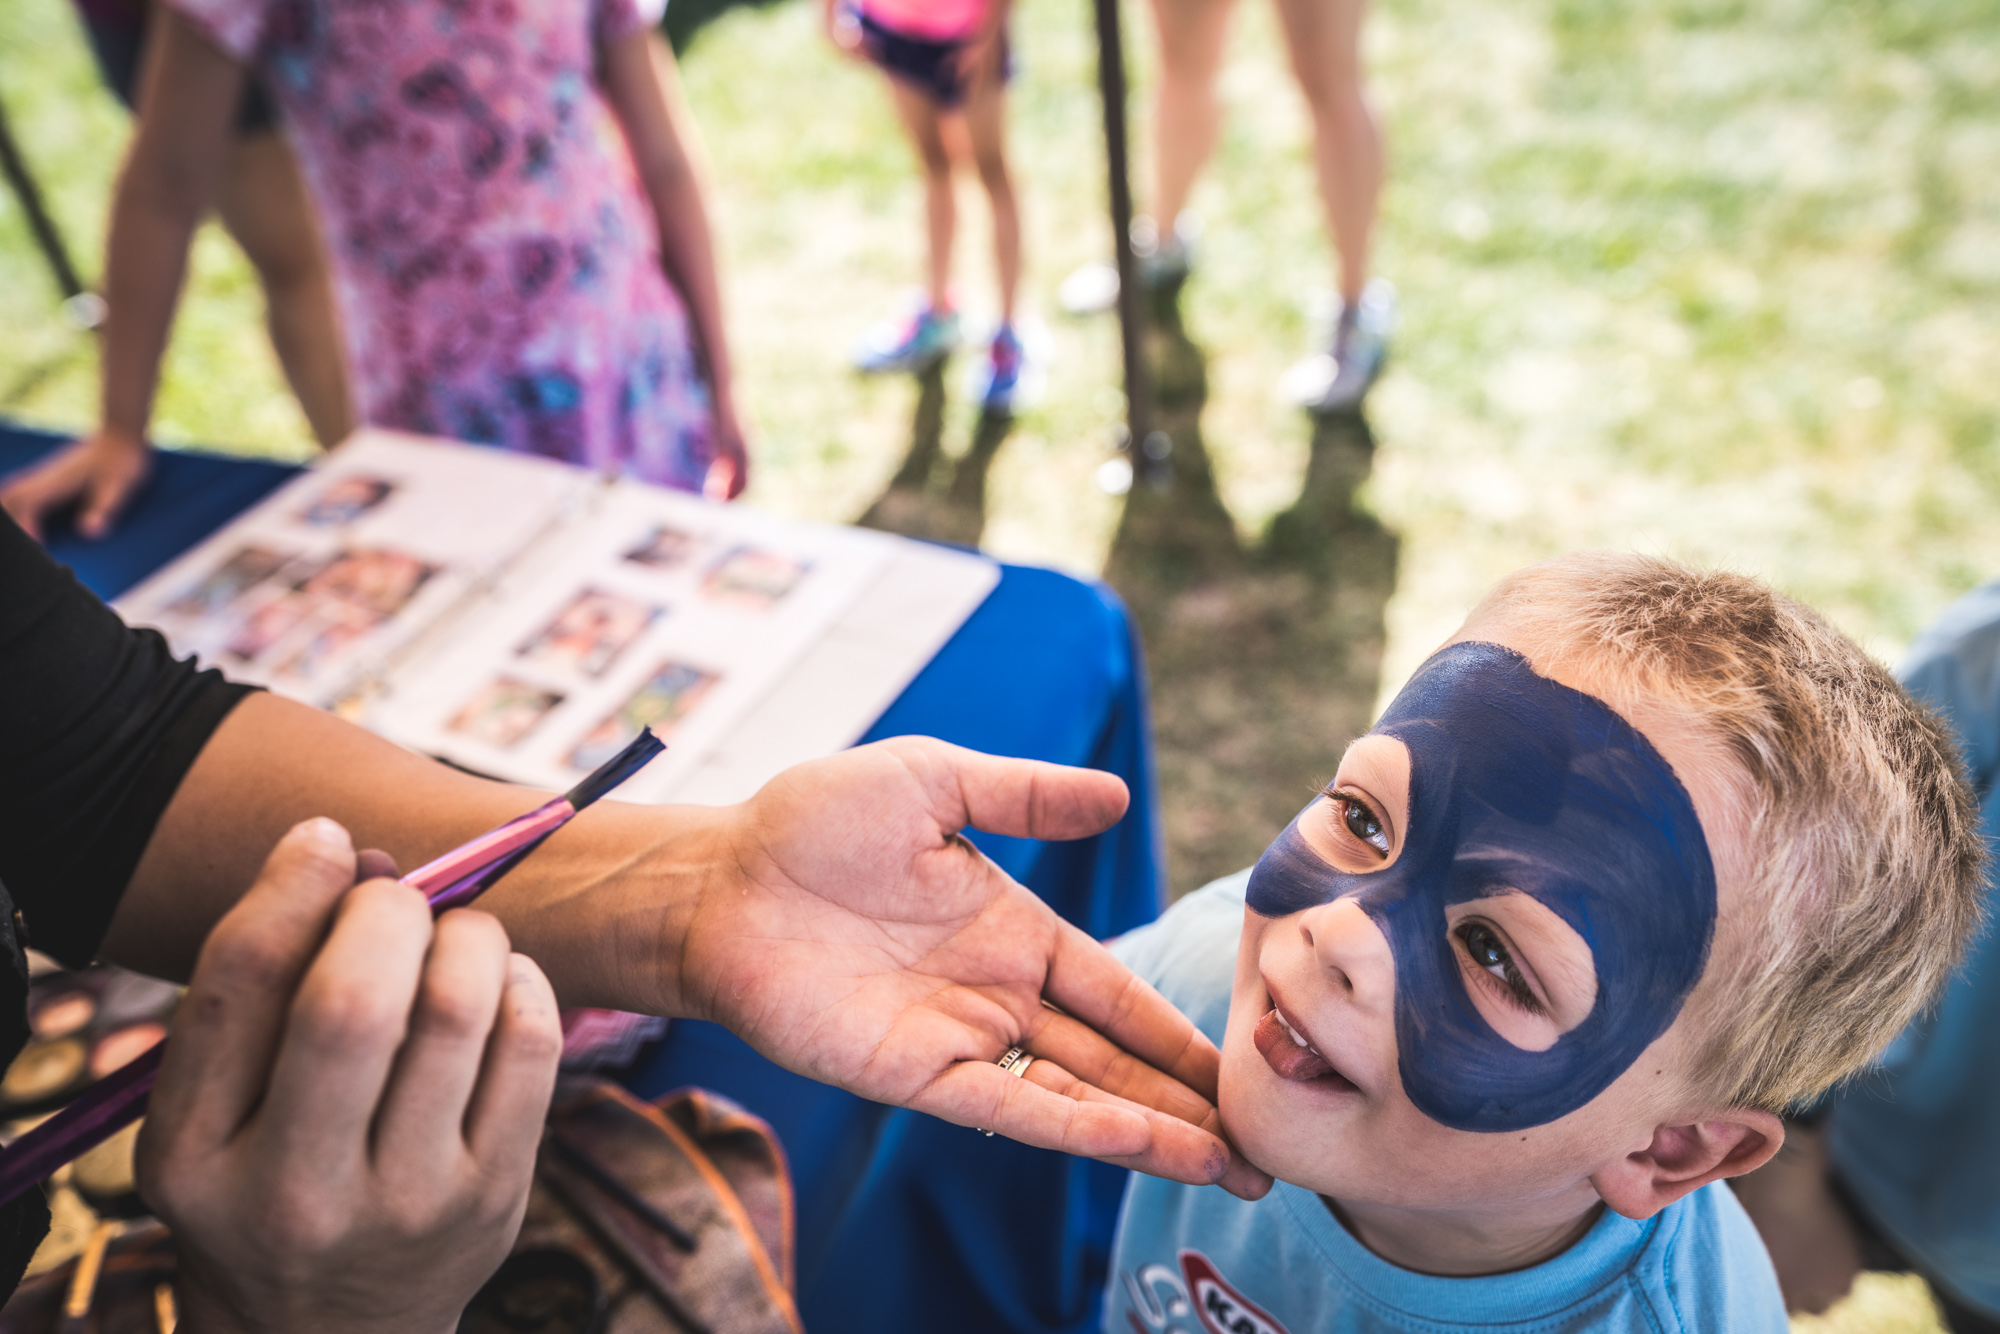 Color photo of a little boy getting his face painted blue at a charity event in Denver, Colorado